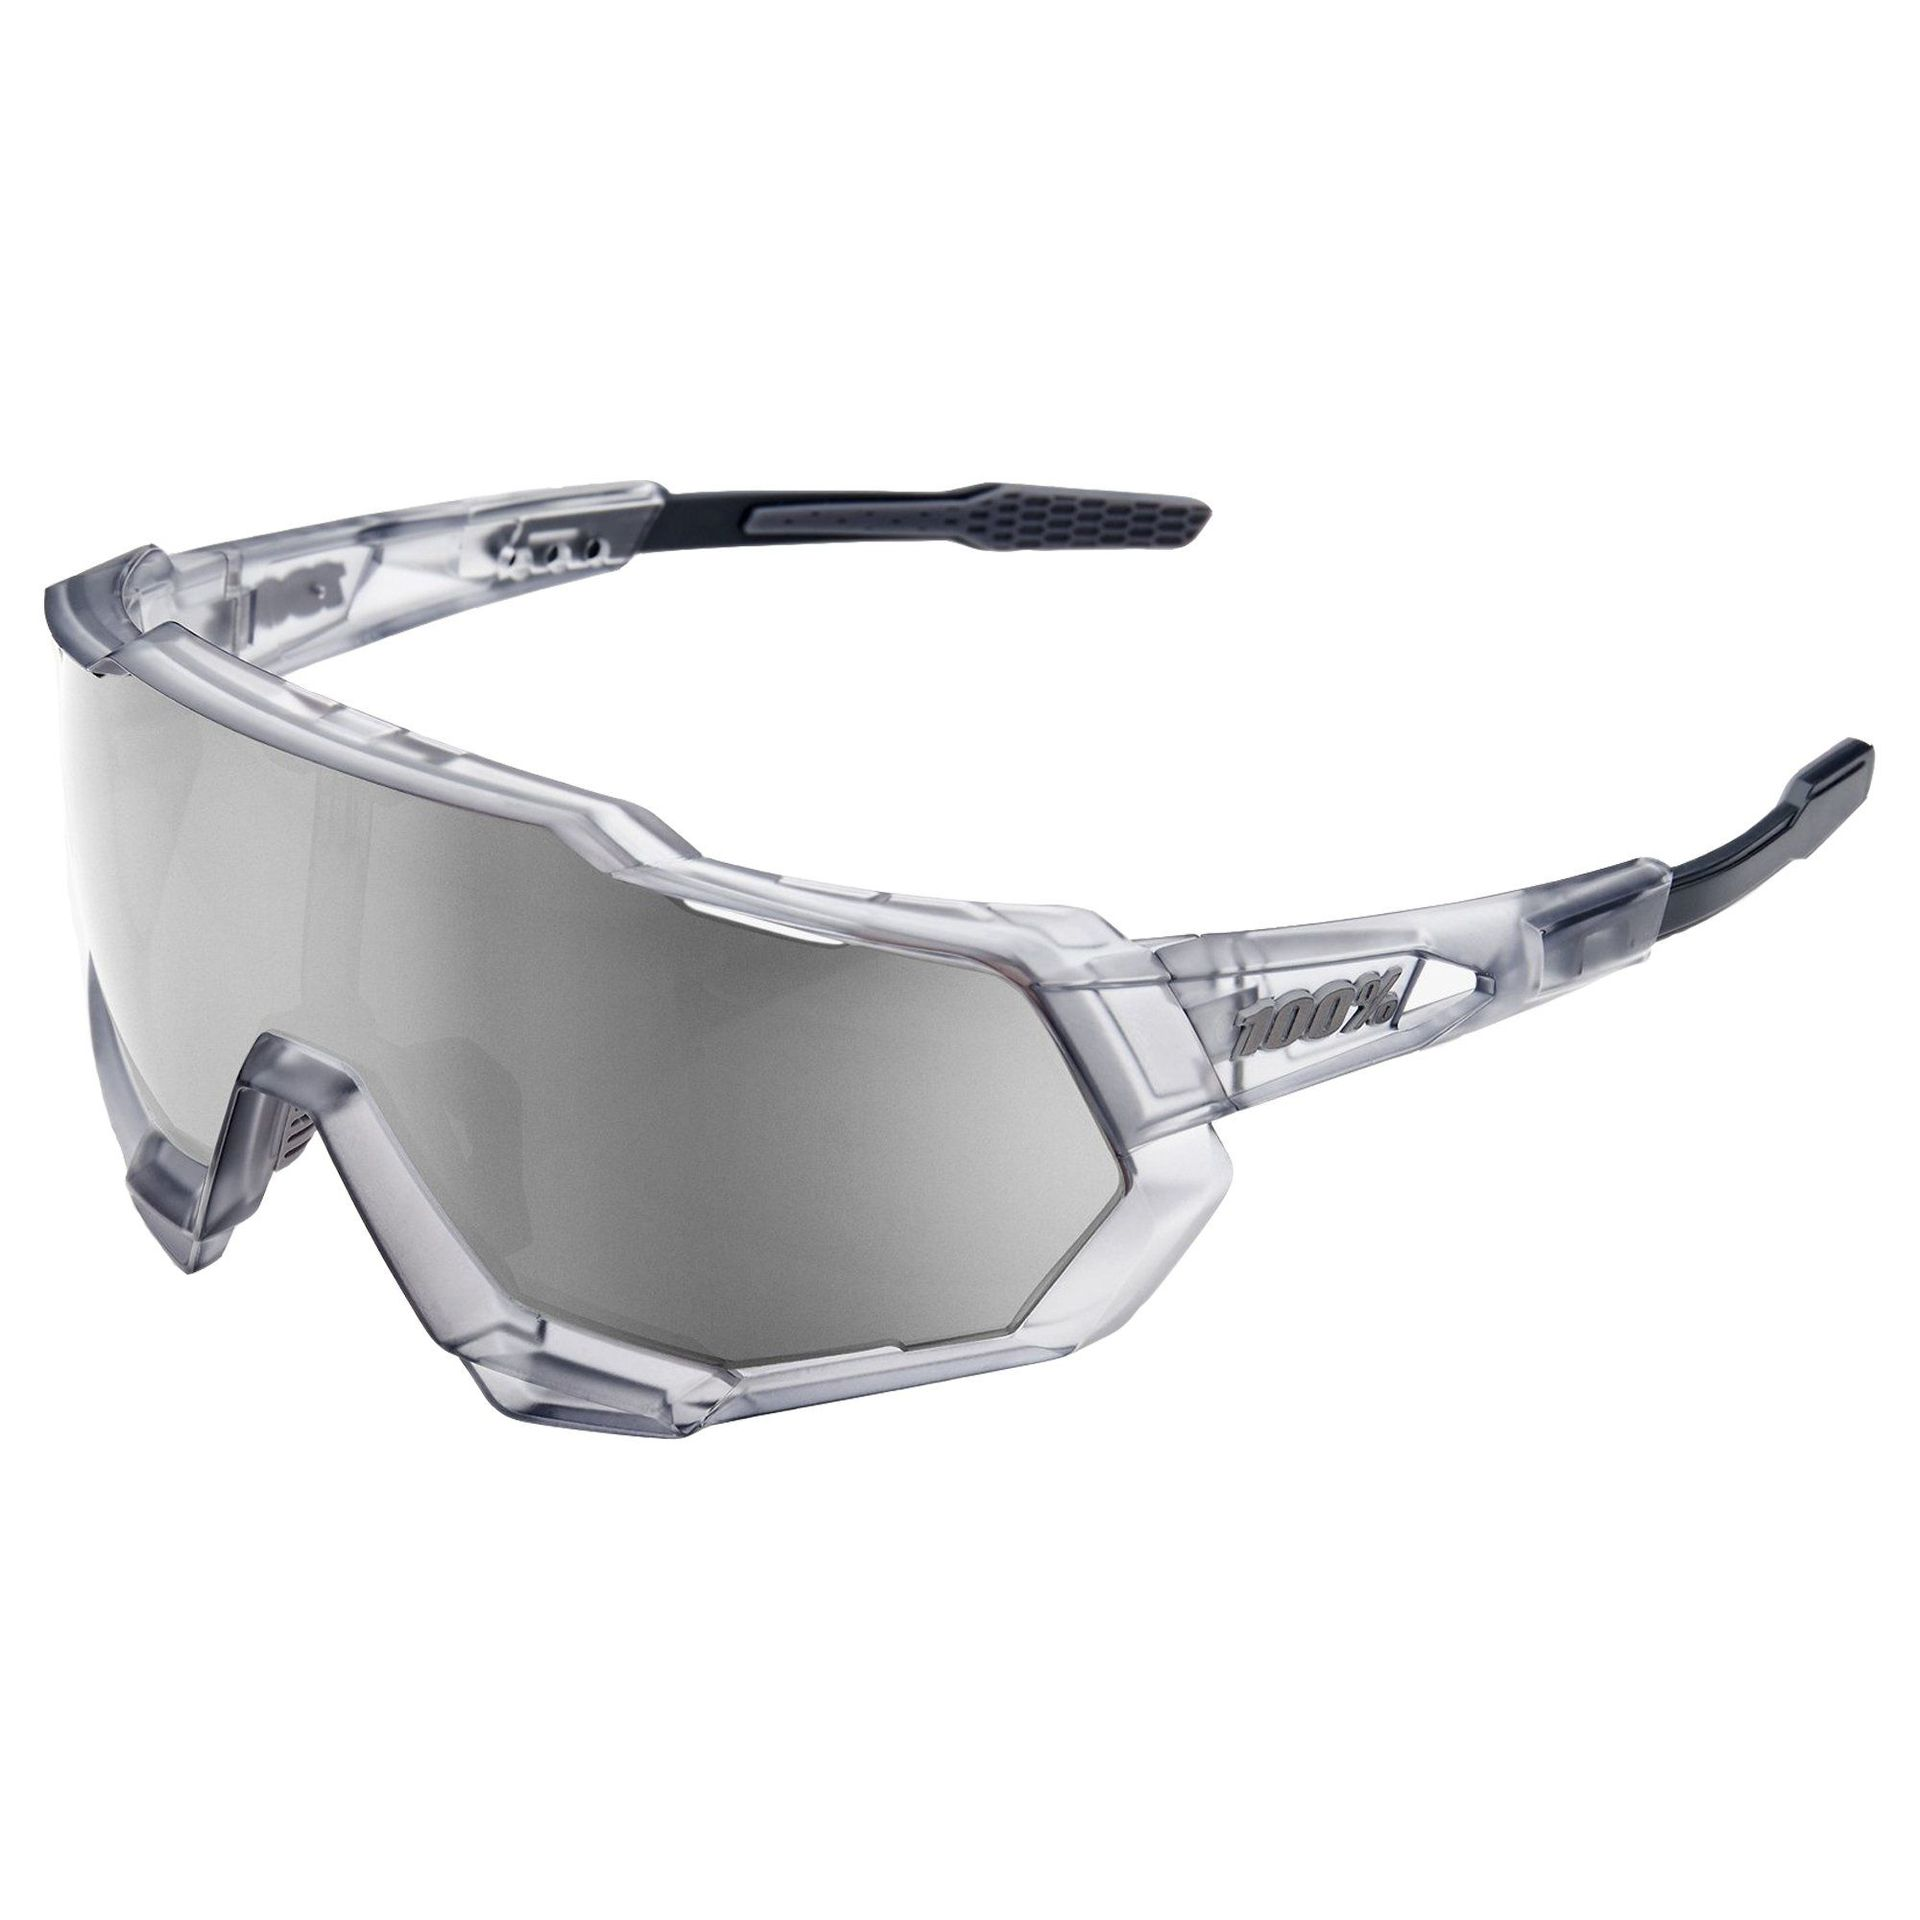 OKULARY 100% SPEEDTRAP MATTE TRANSLUCENT CRYSTAL GREY|HIPER SILVER 1